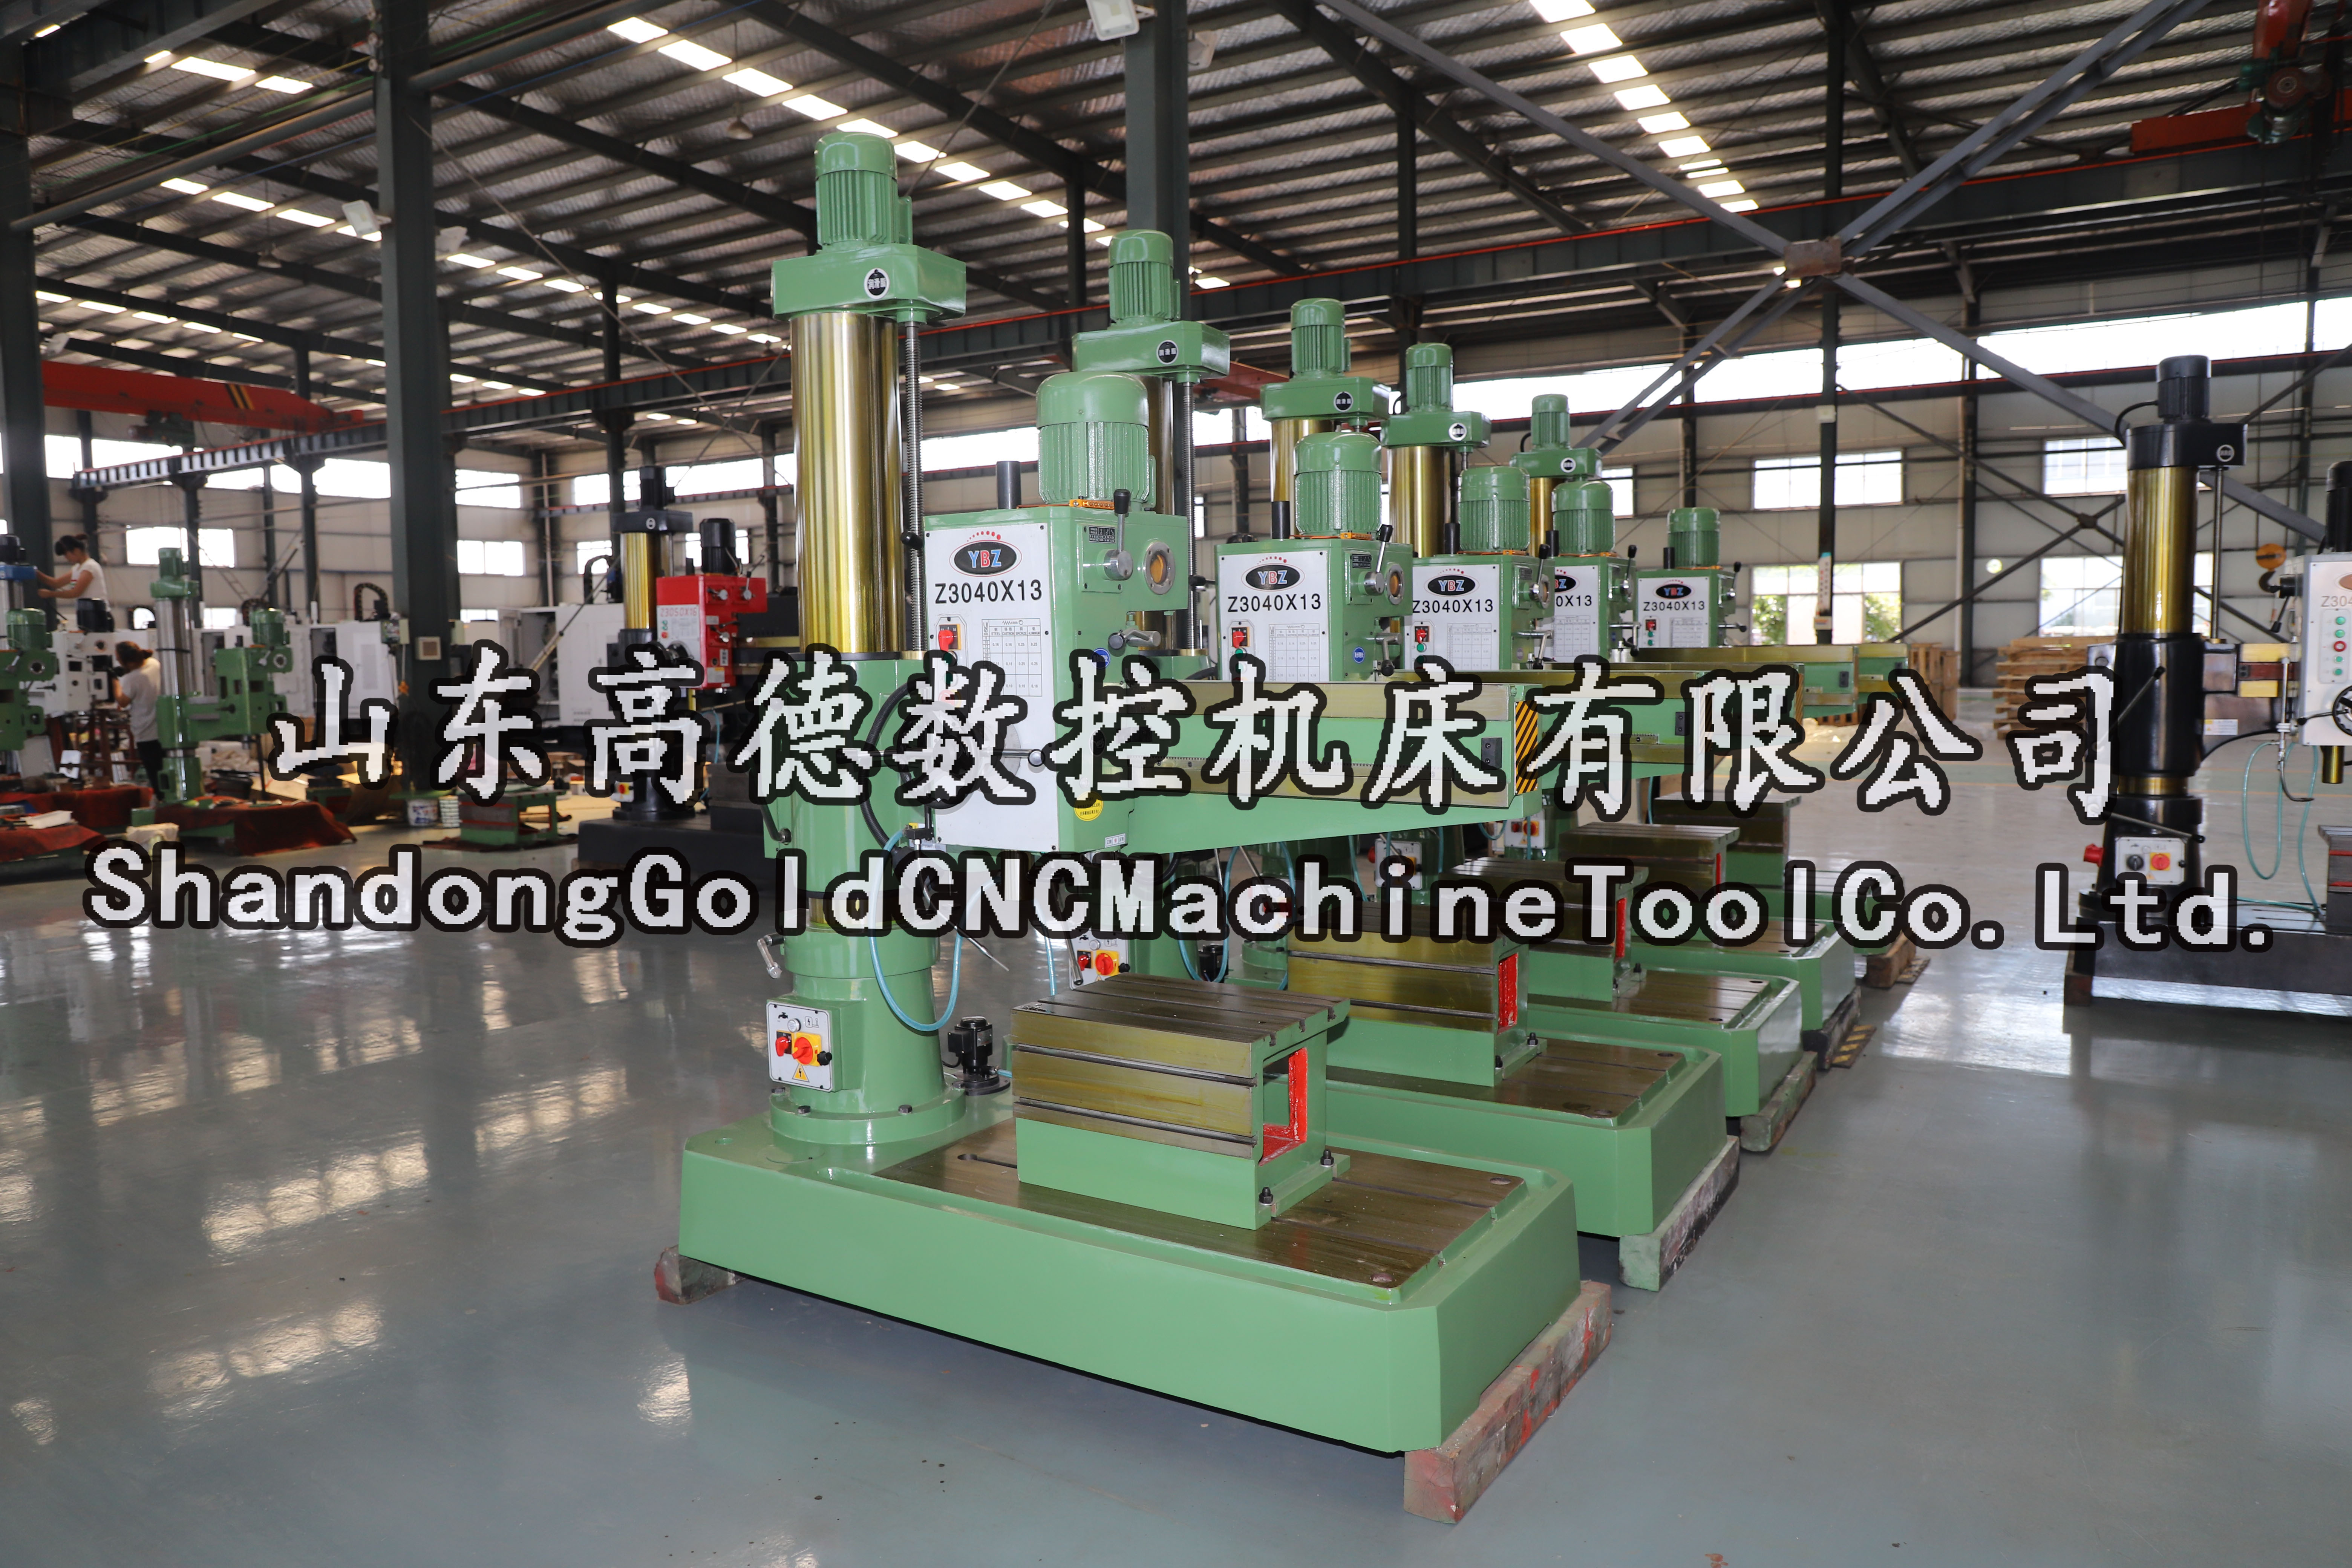 Z3040*13 Radial Drilling Machine